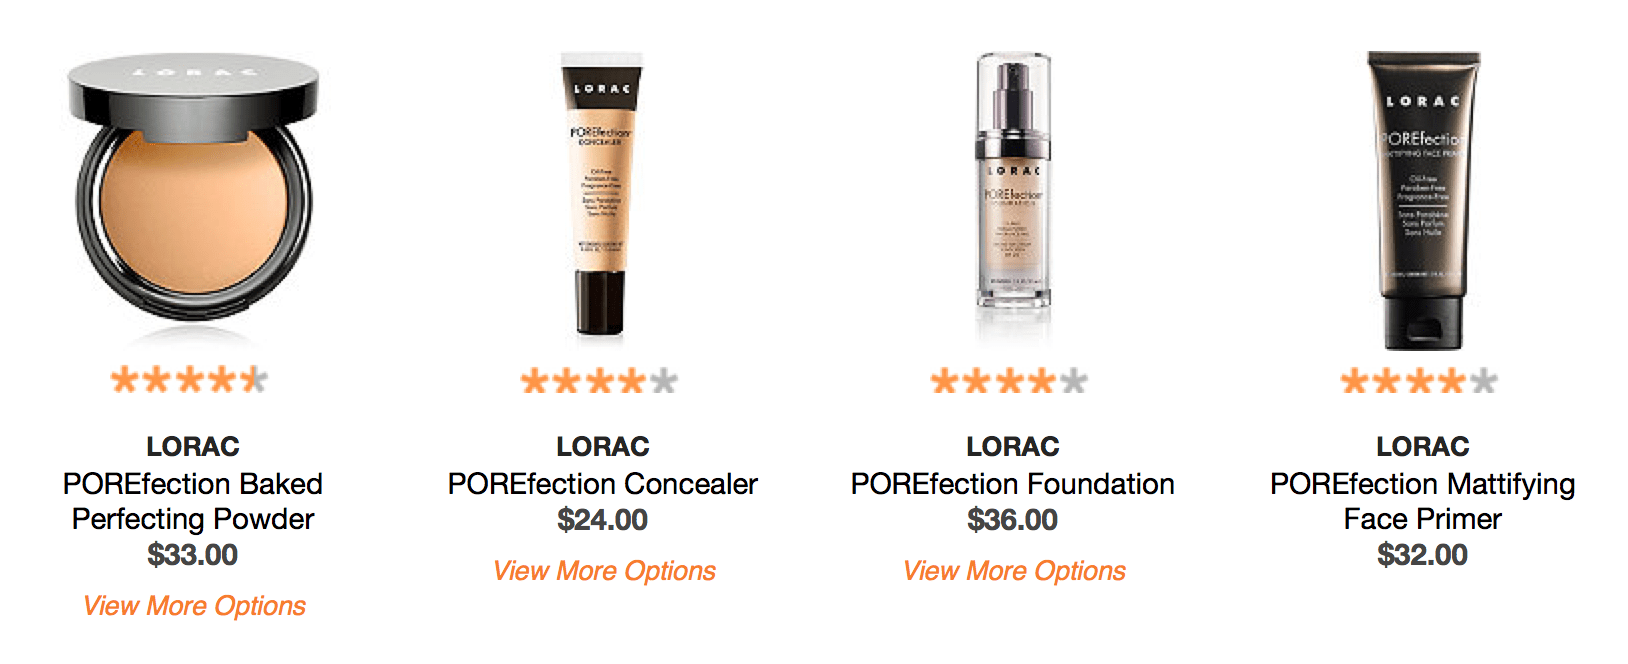 Flawless Face Routine // LORAC POREfection Products on Ulta // FromMyVanity.com